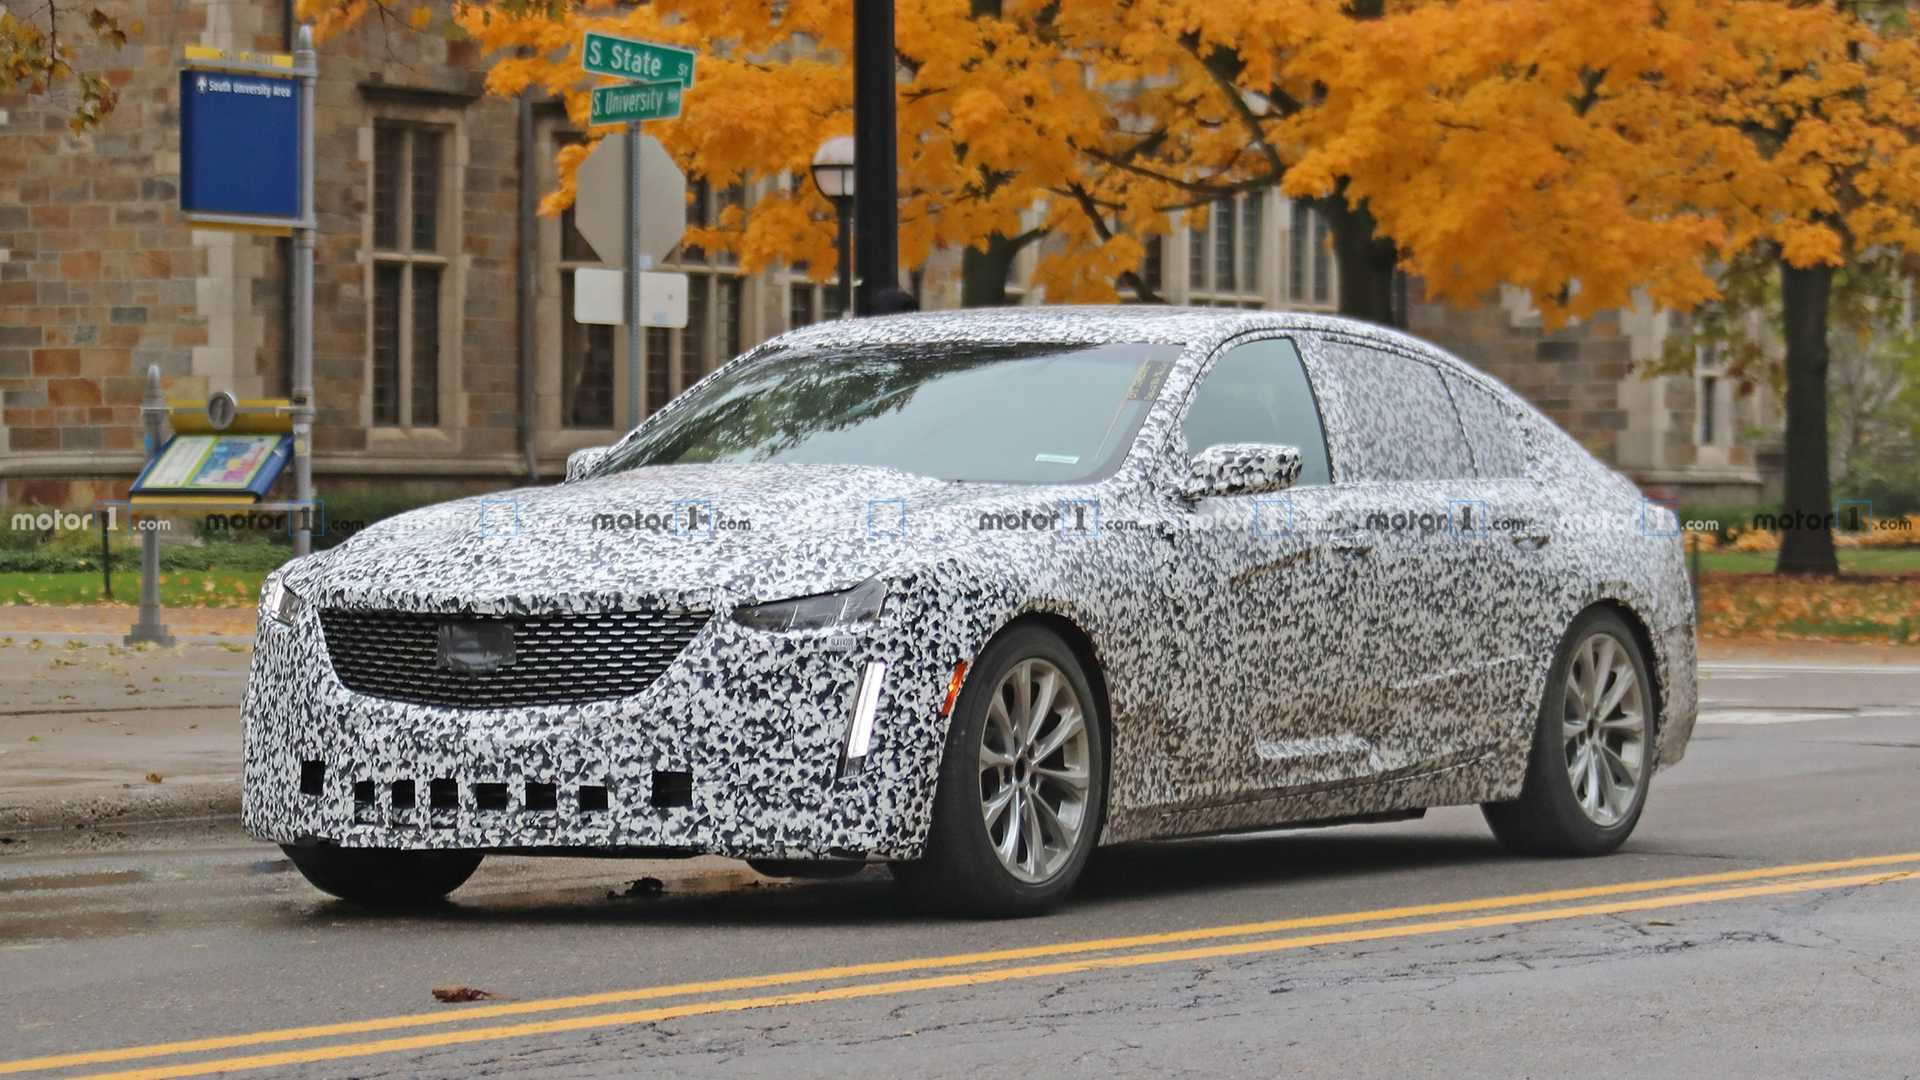 2020 Cadillac Ct5 Spied From All Sides Inside And Out